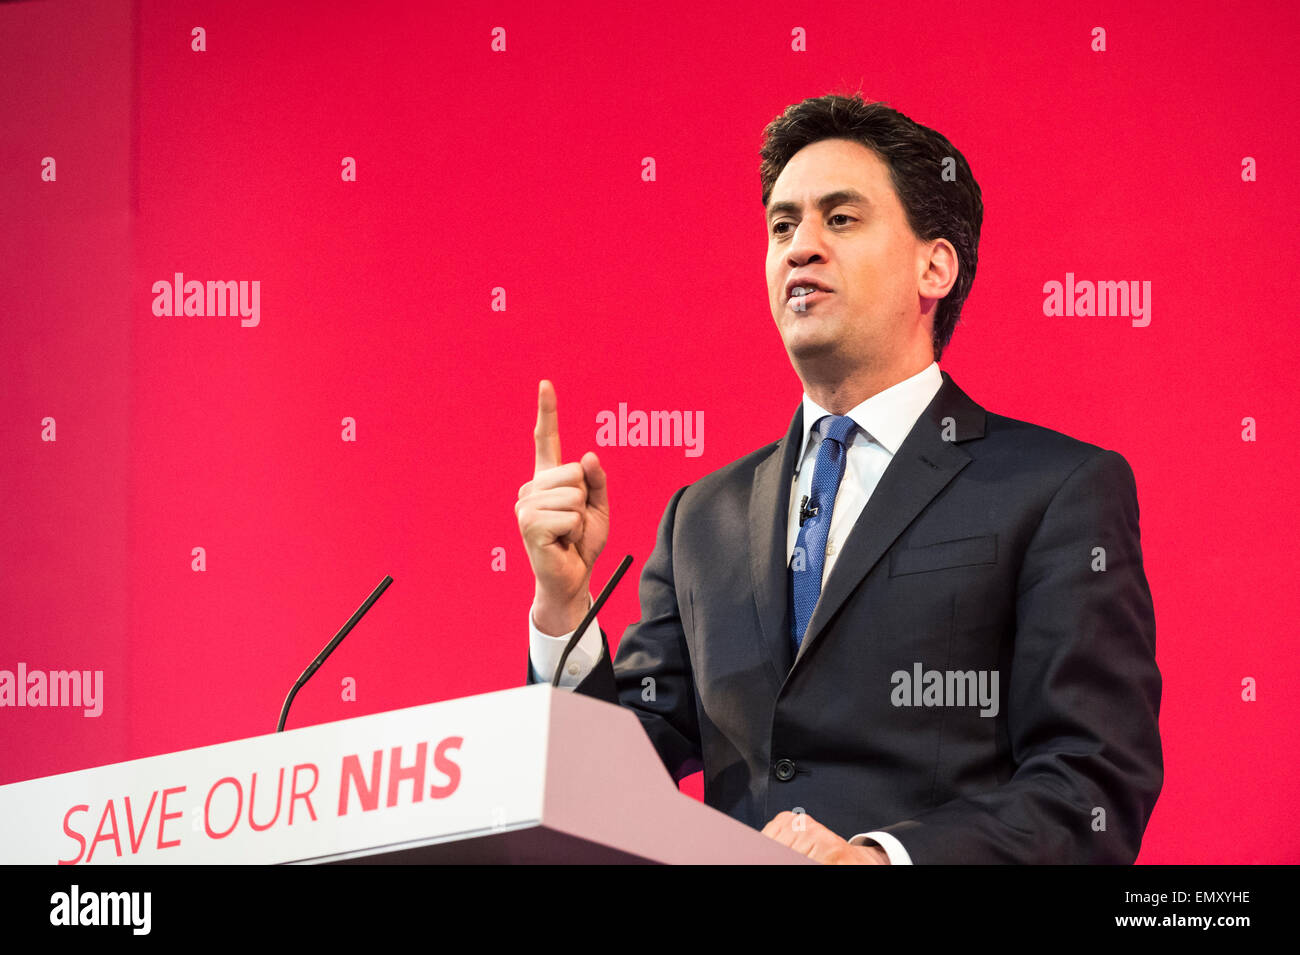 Leeds, UK. 23rd Apr, 2015. Ed Miliband addressed hundreds of Labour supporters and trade unionists at a rally in - Stock Image